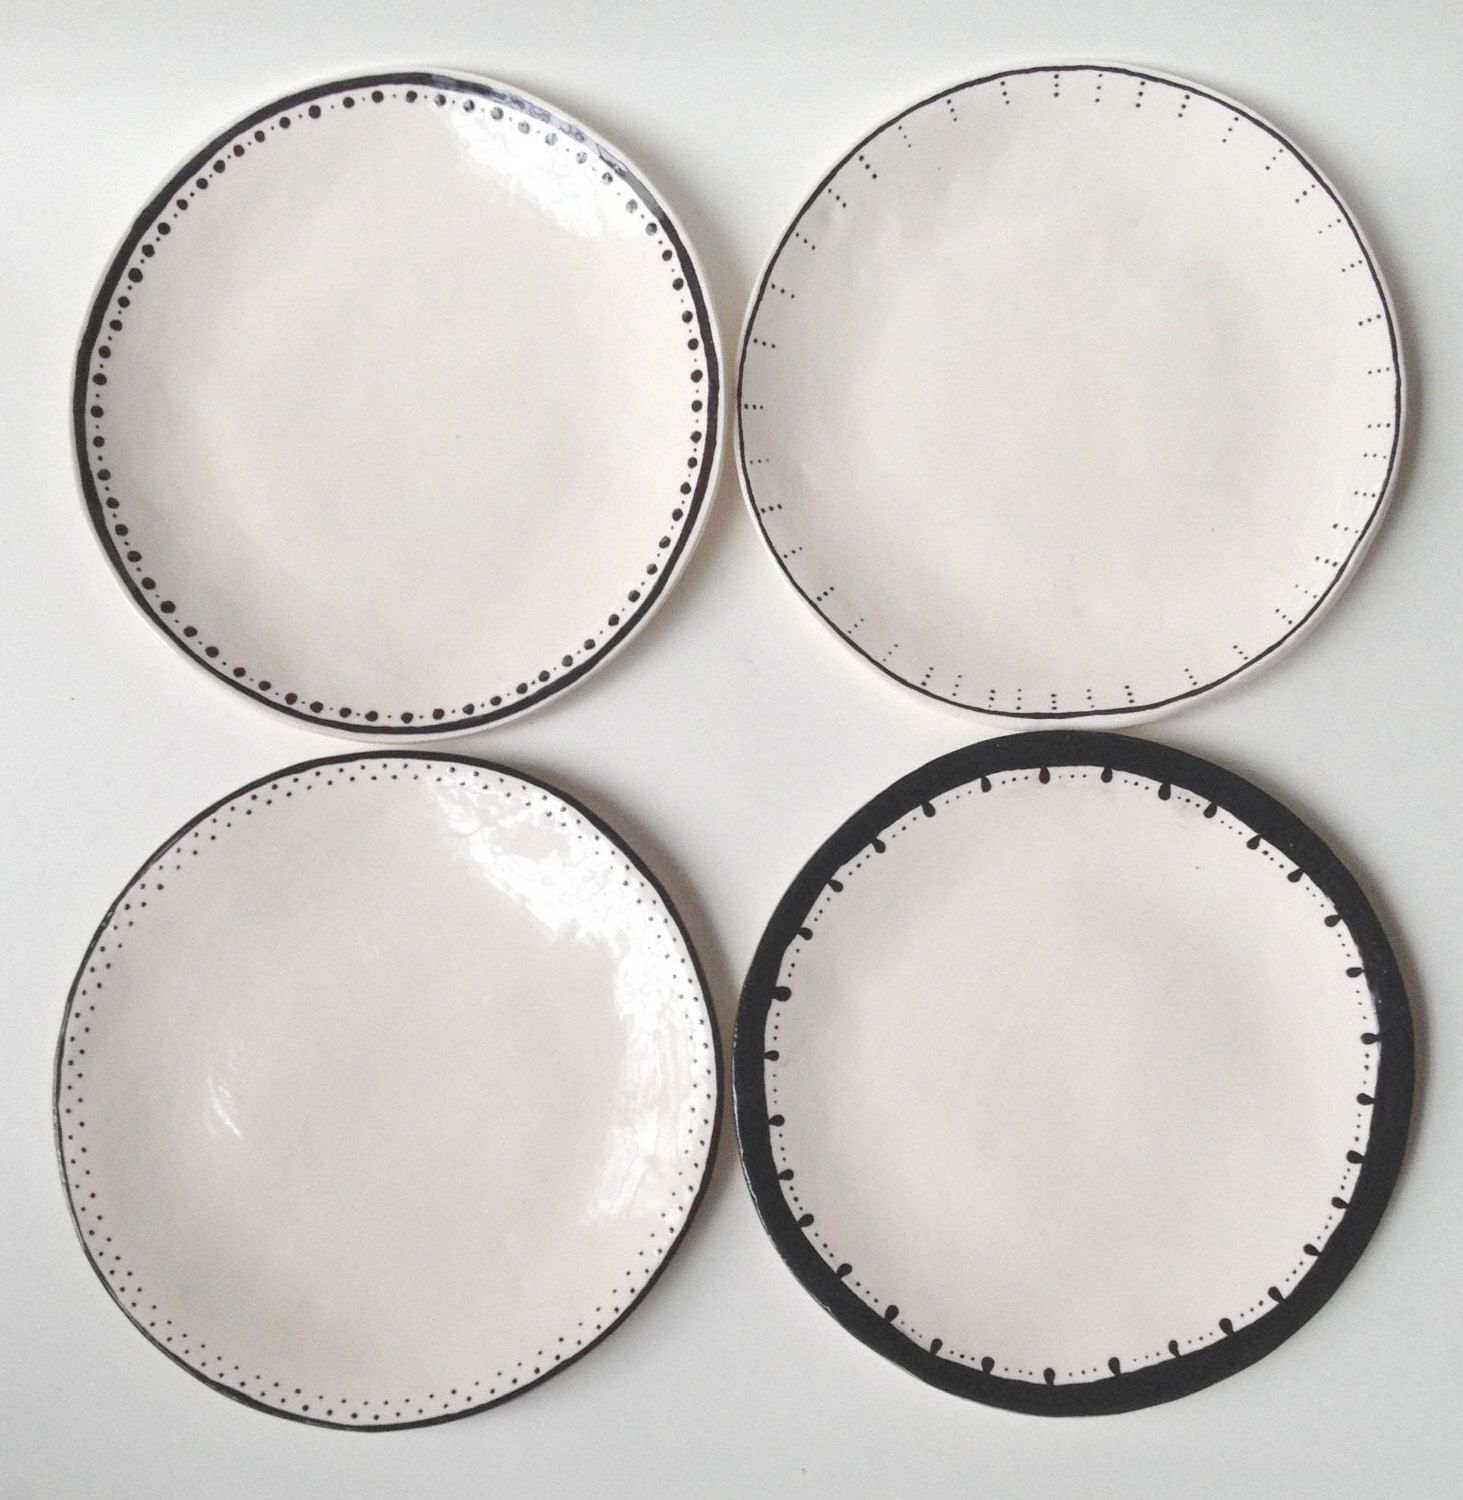 Geschirr Rustikal set of 4 dinner plates black white ceramic wabi sabi mix